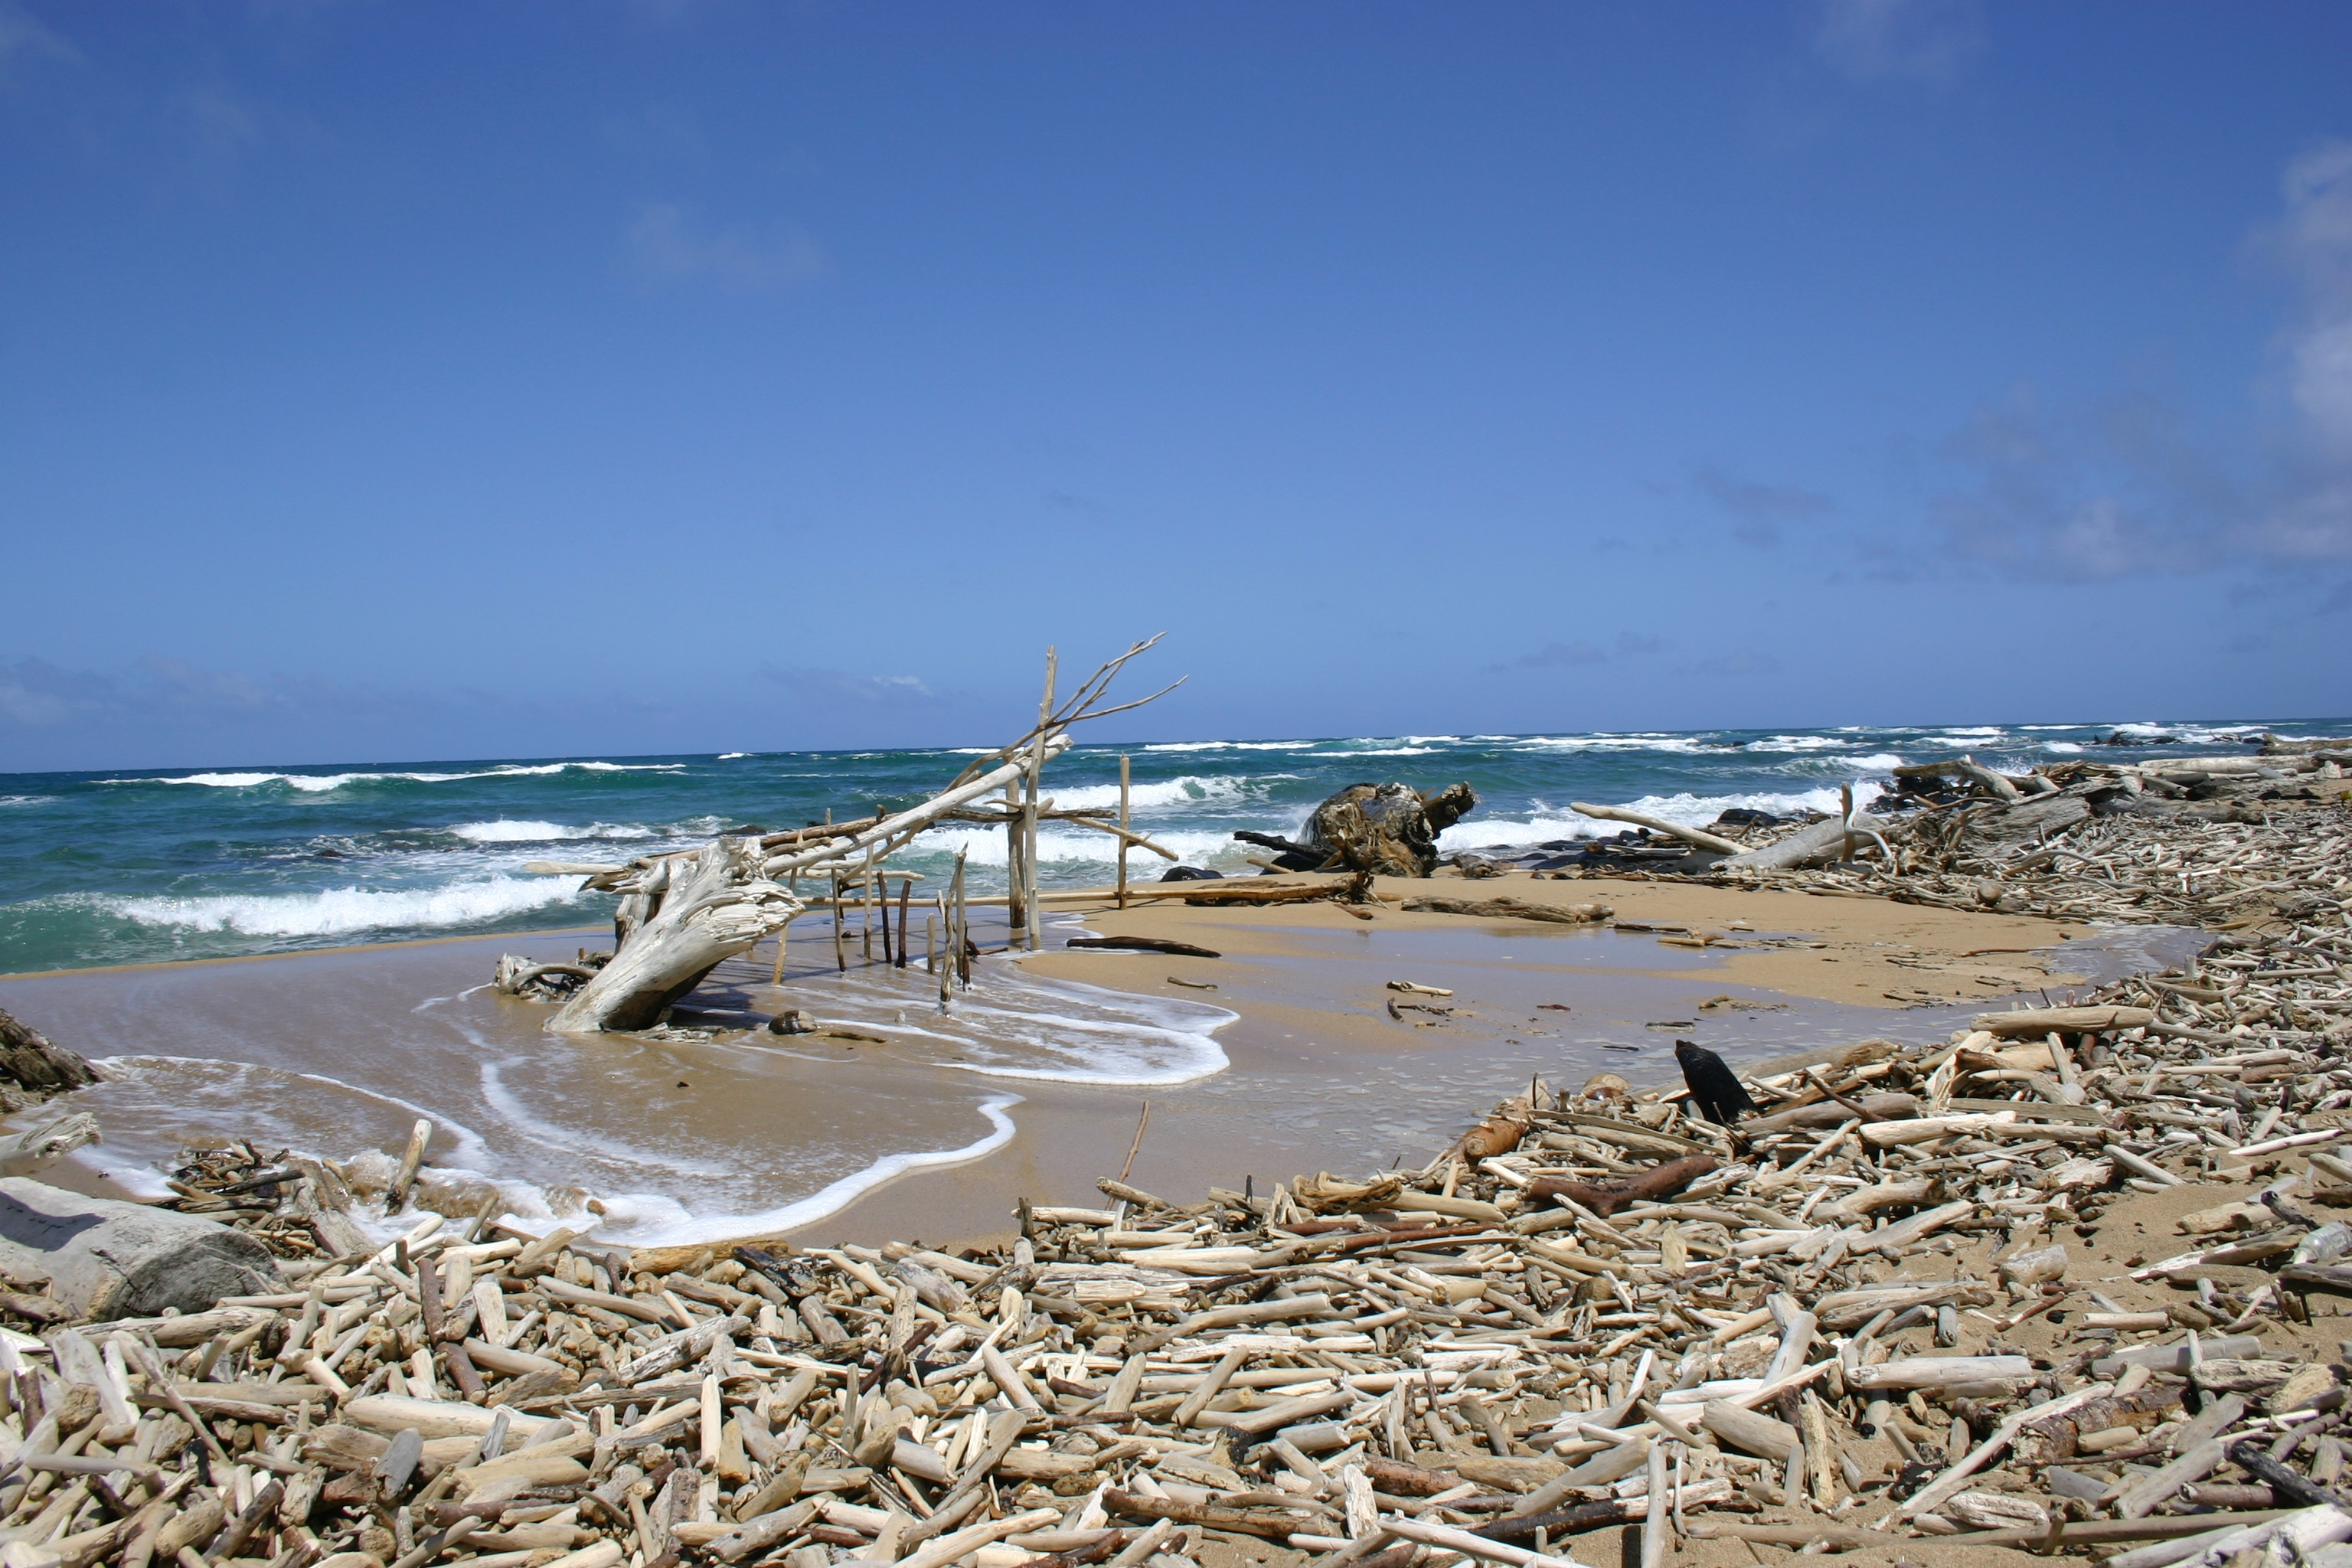 Driftwood structure at the mouth of the Wailua River, where it meets the Pacific Ocean.